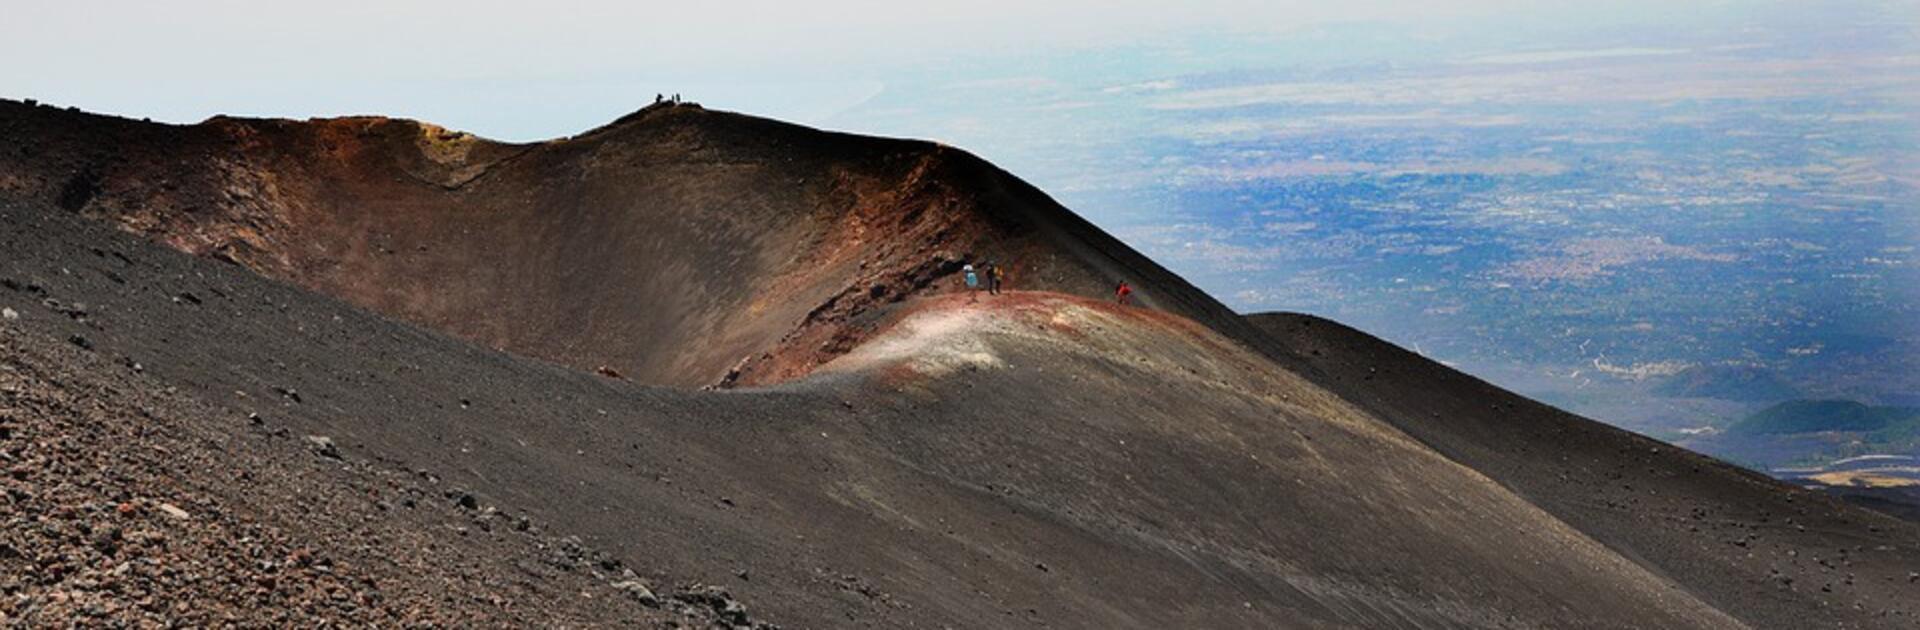 The explosive nature of Etna